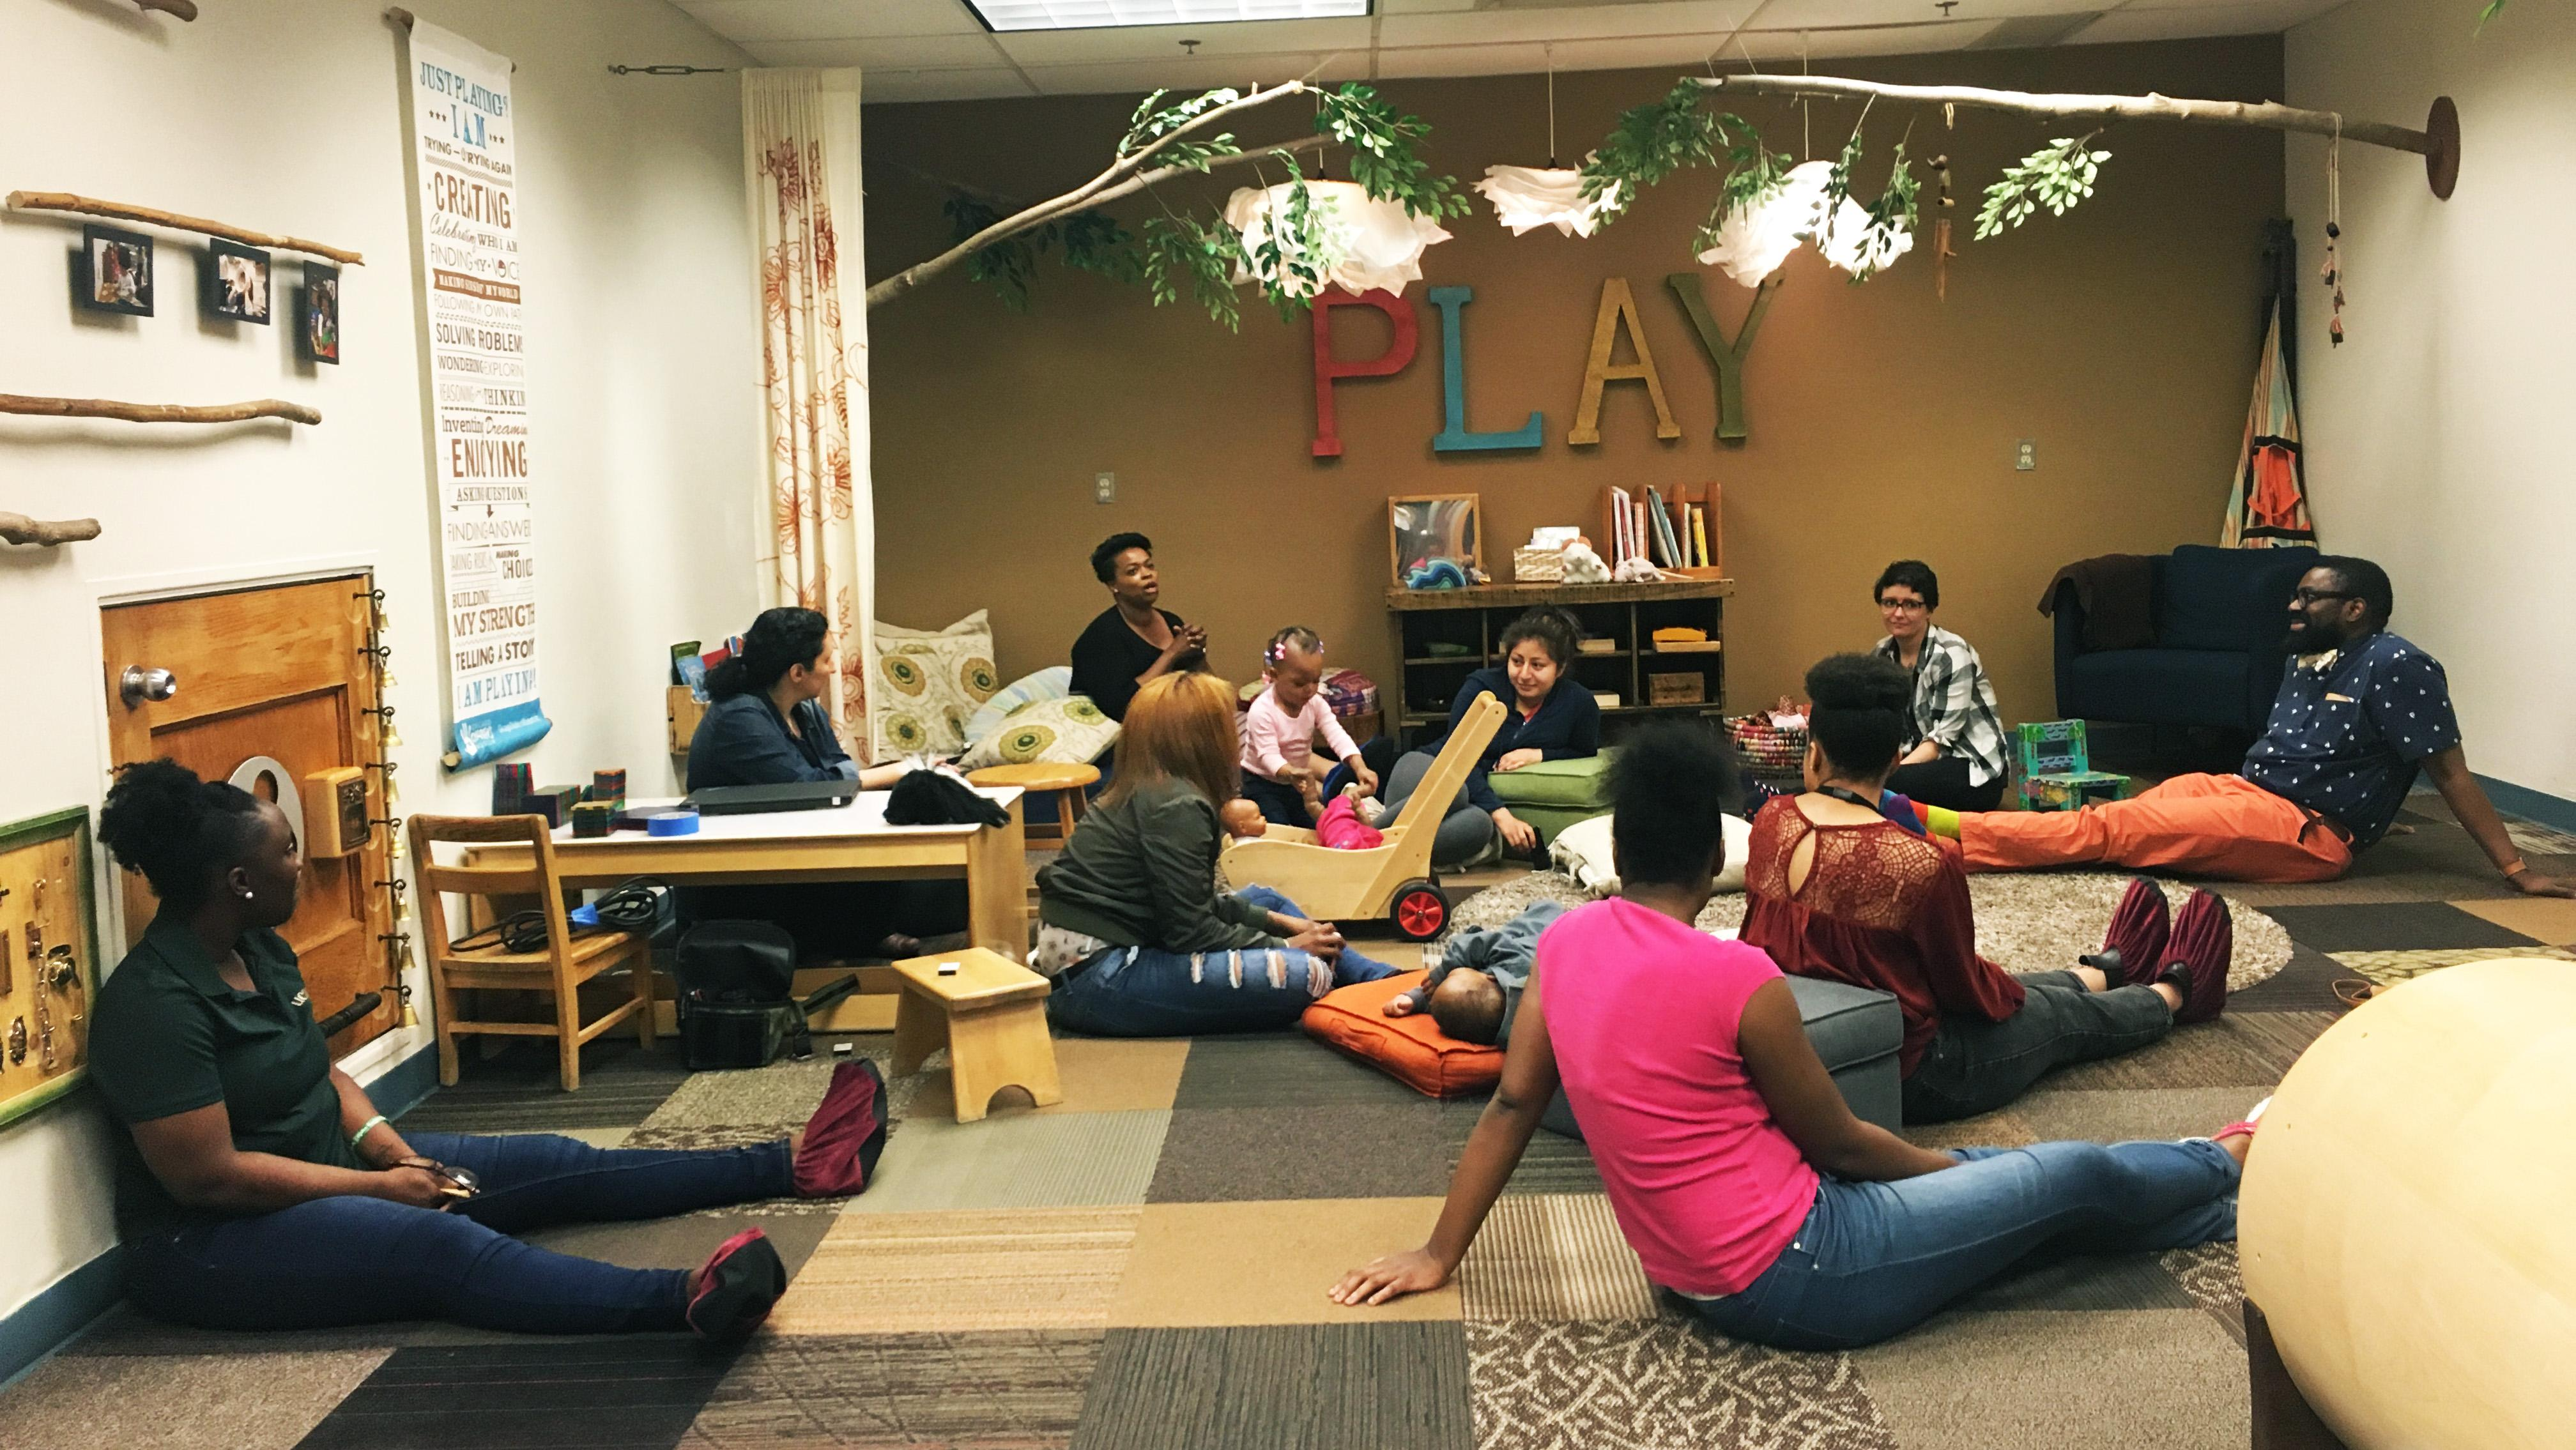 Participants, facilitators and organizers talk about what the WePlay program has meant to them as the 12-week session comes to an end. (Maya Miller / Chicago Tonight)